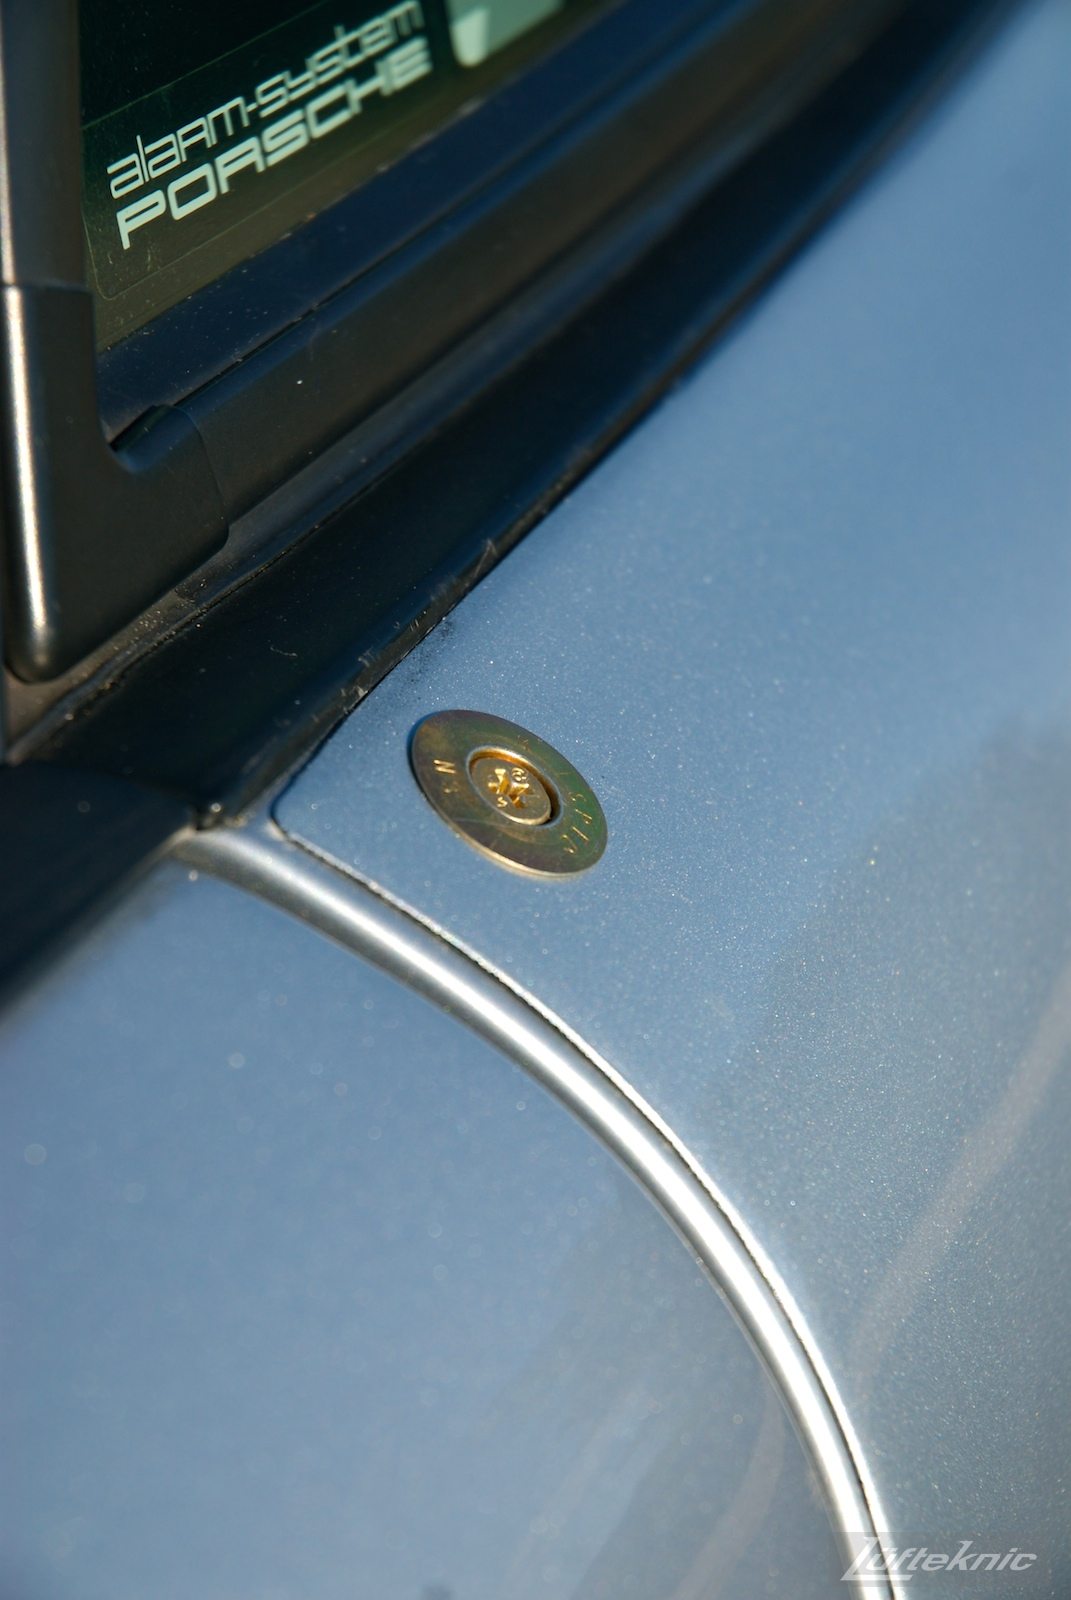 A detailed photo of a cam lock fastener on the side of the RS America.